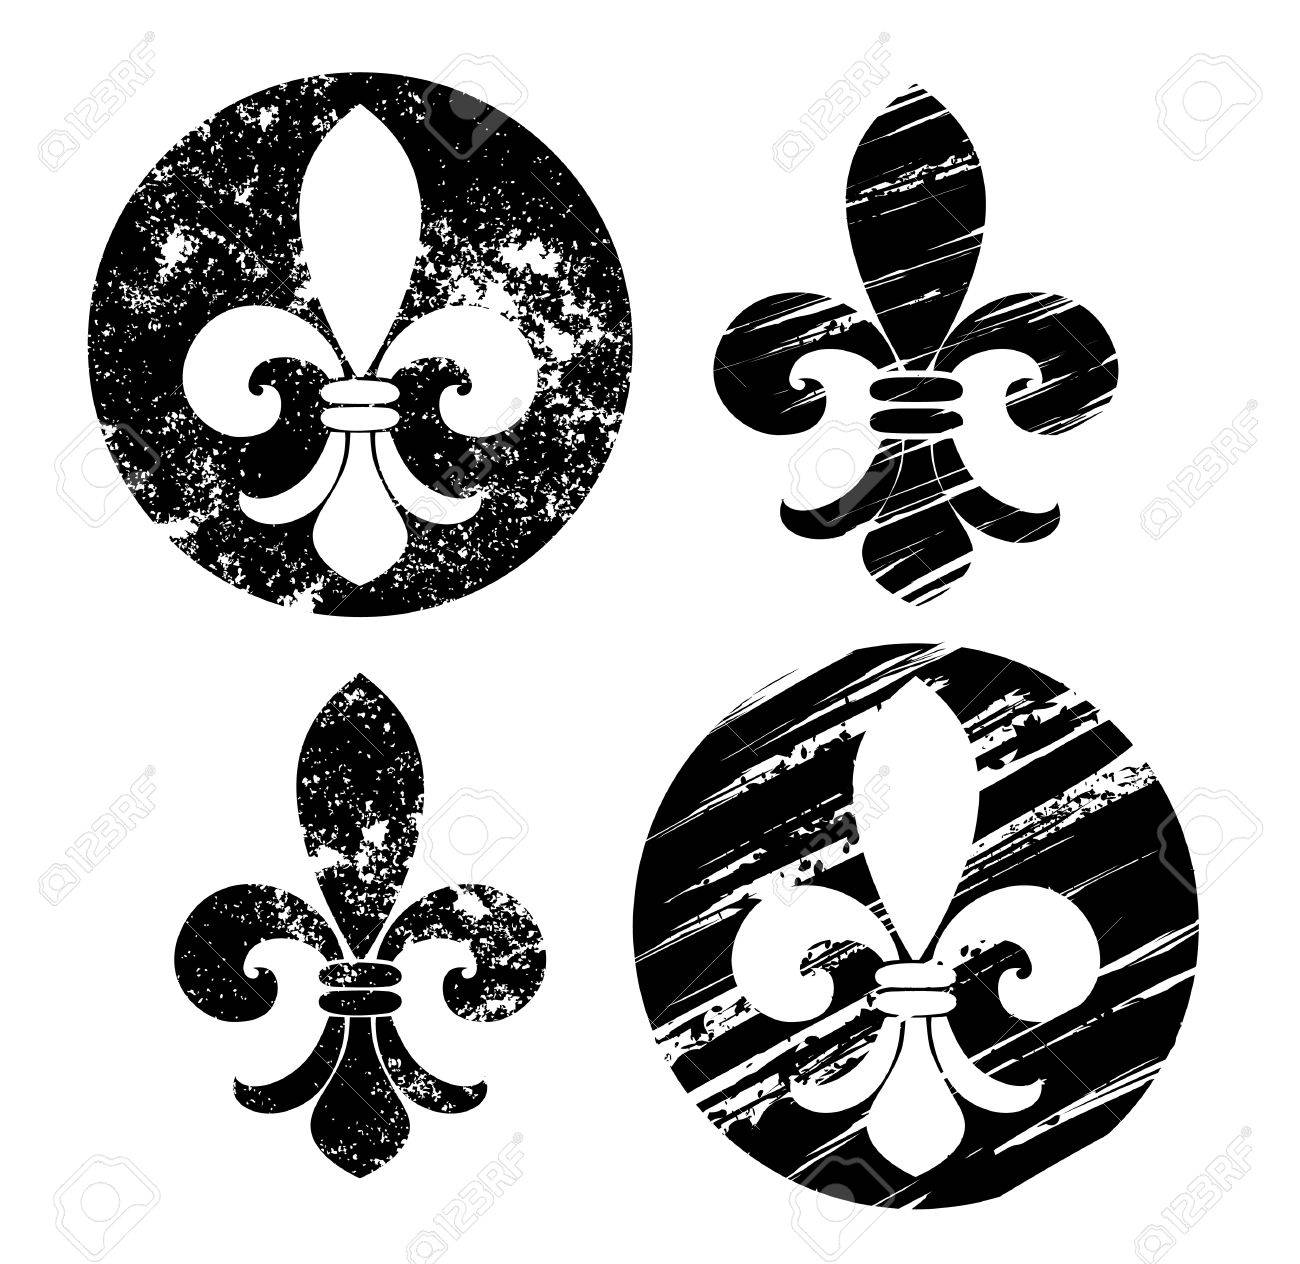 hight resolution of set of fleur de lis painted in black on a white background